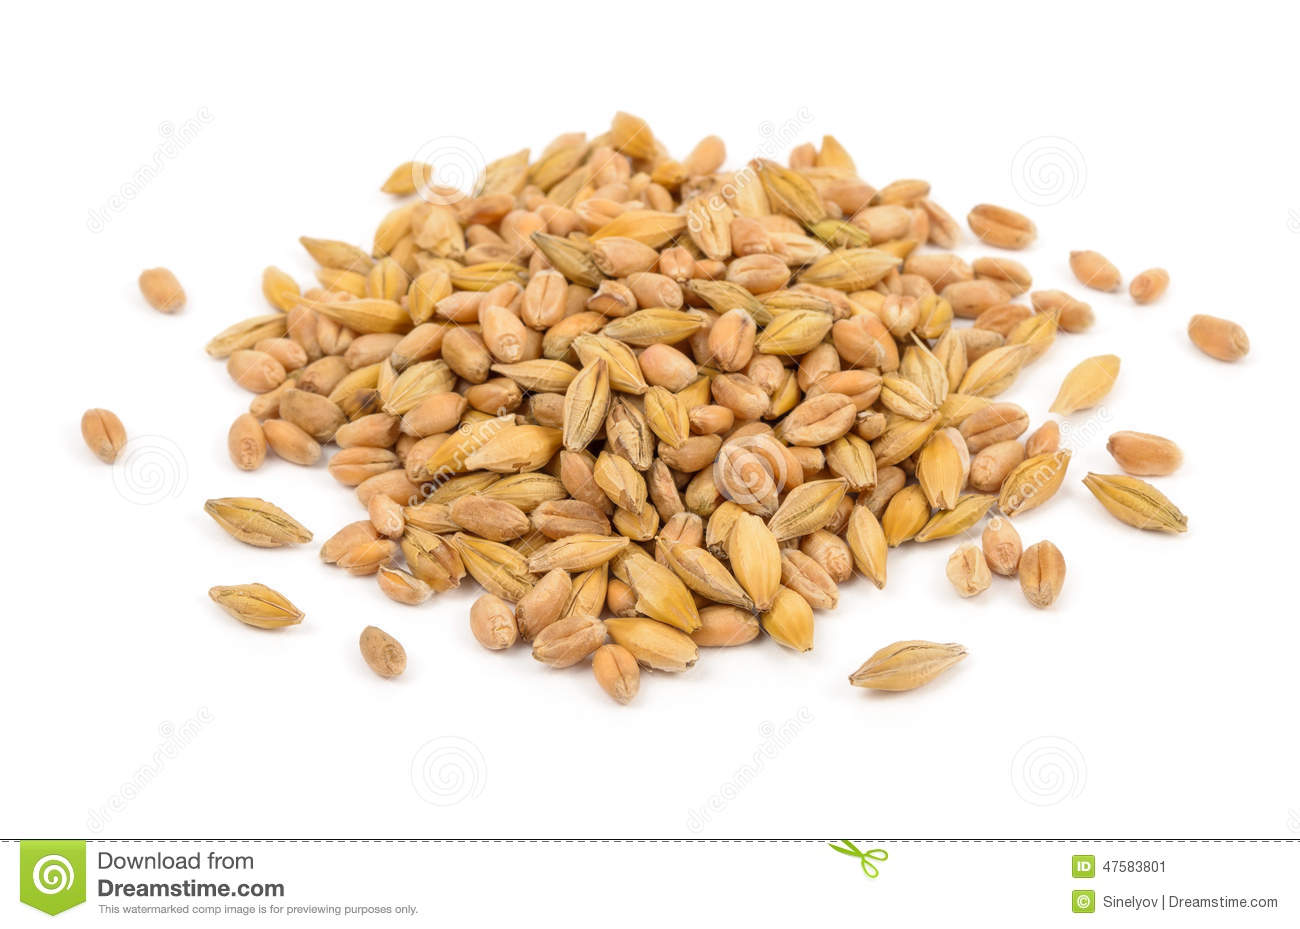 how to eat wheat germ raw